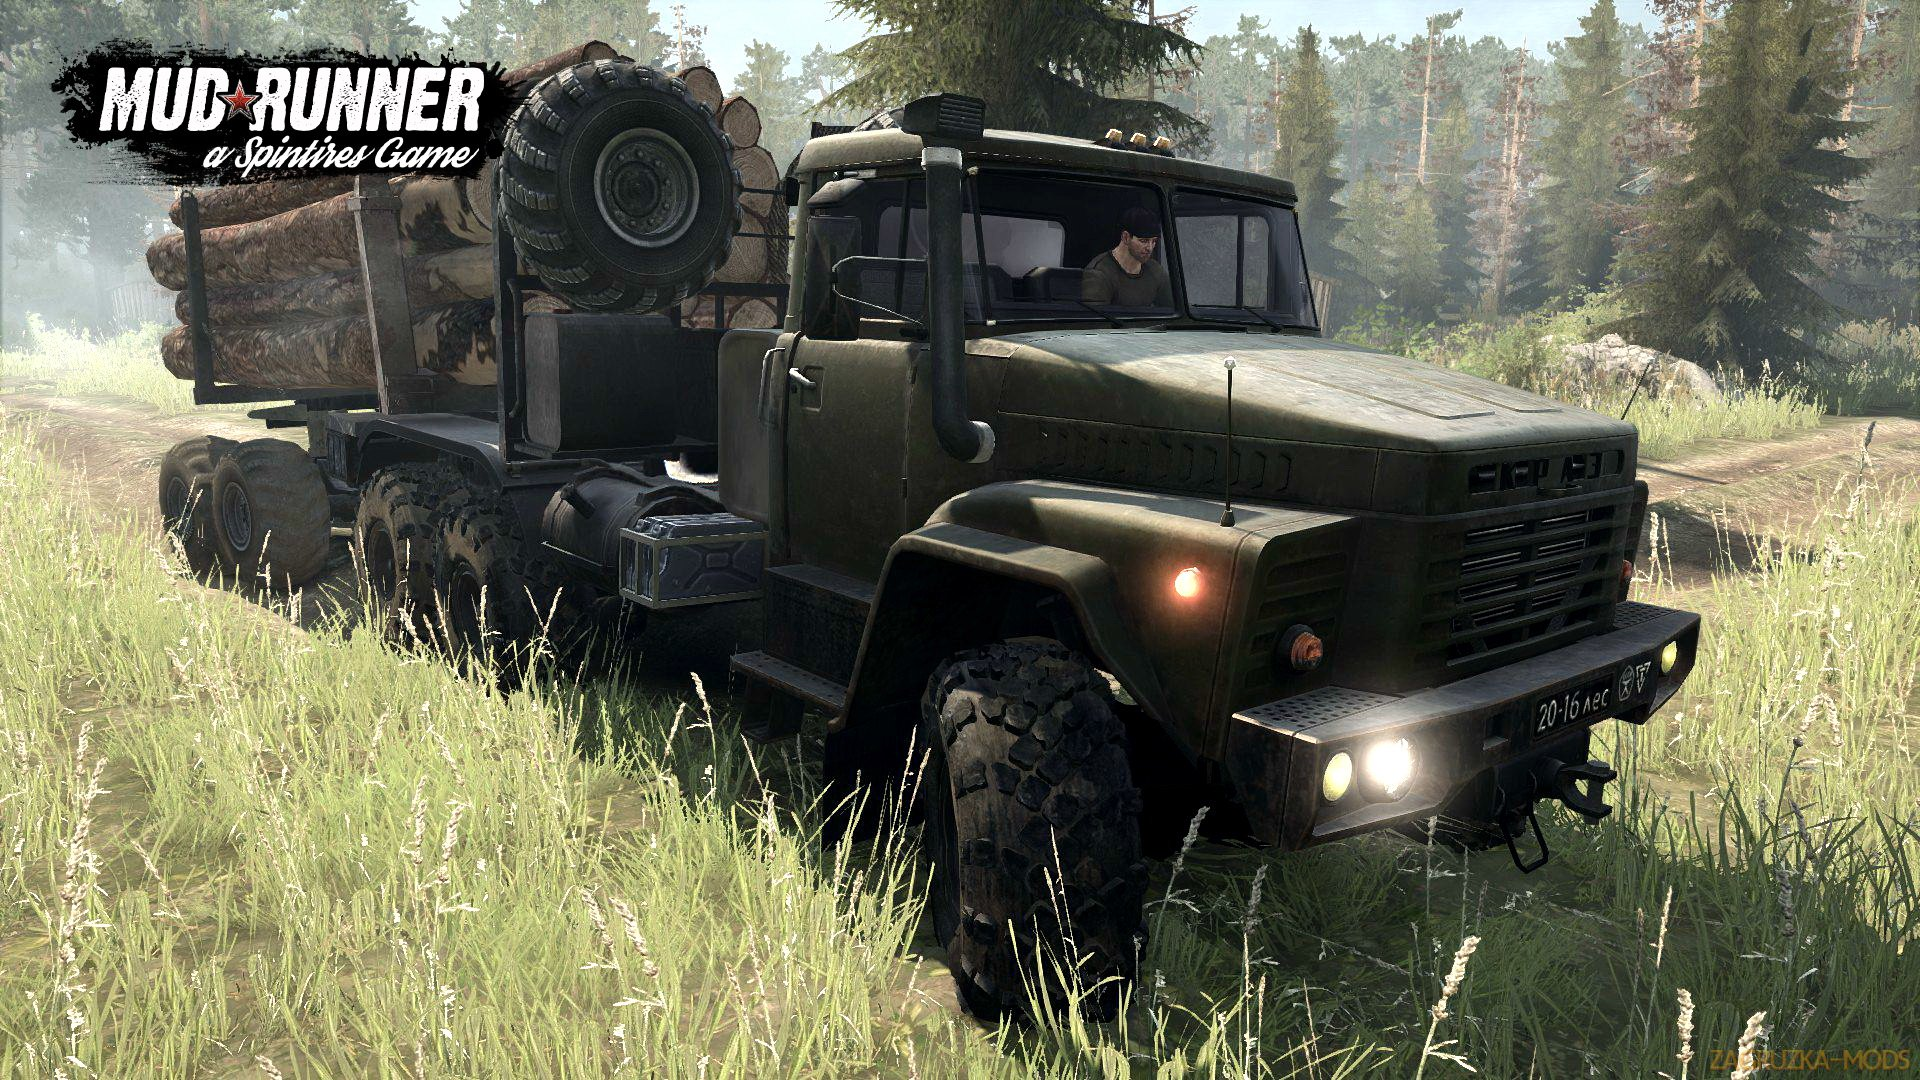 KrAZ-260 (M) v1.0 (v07.11.17) for Spin Tires: MudRunner